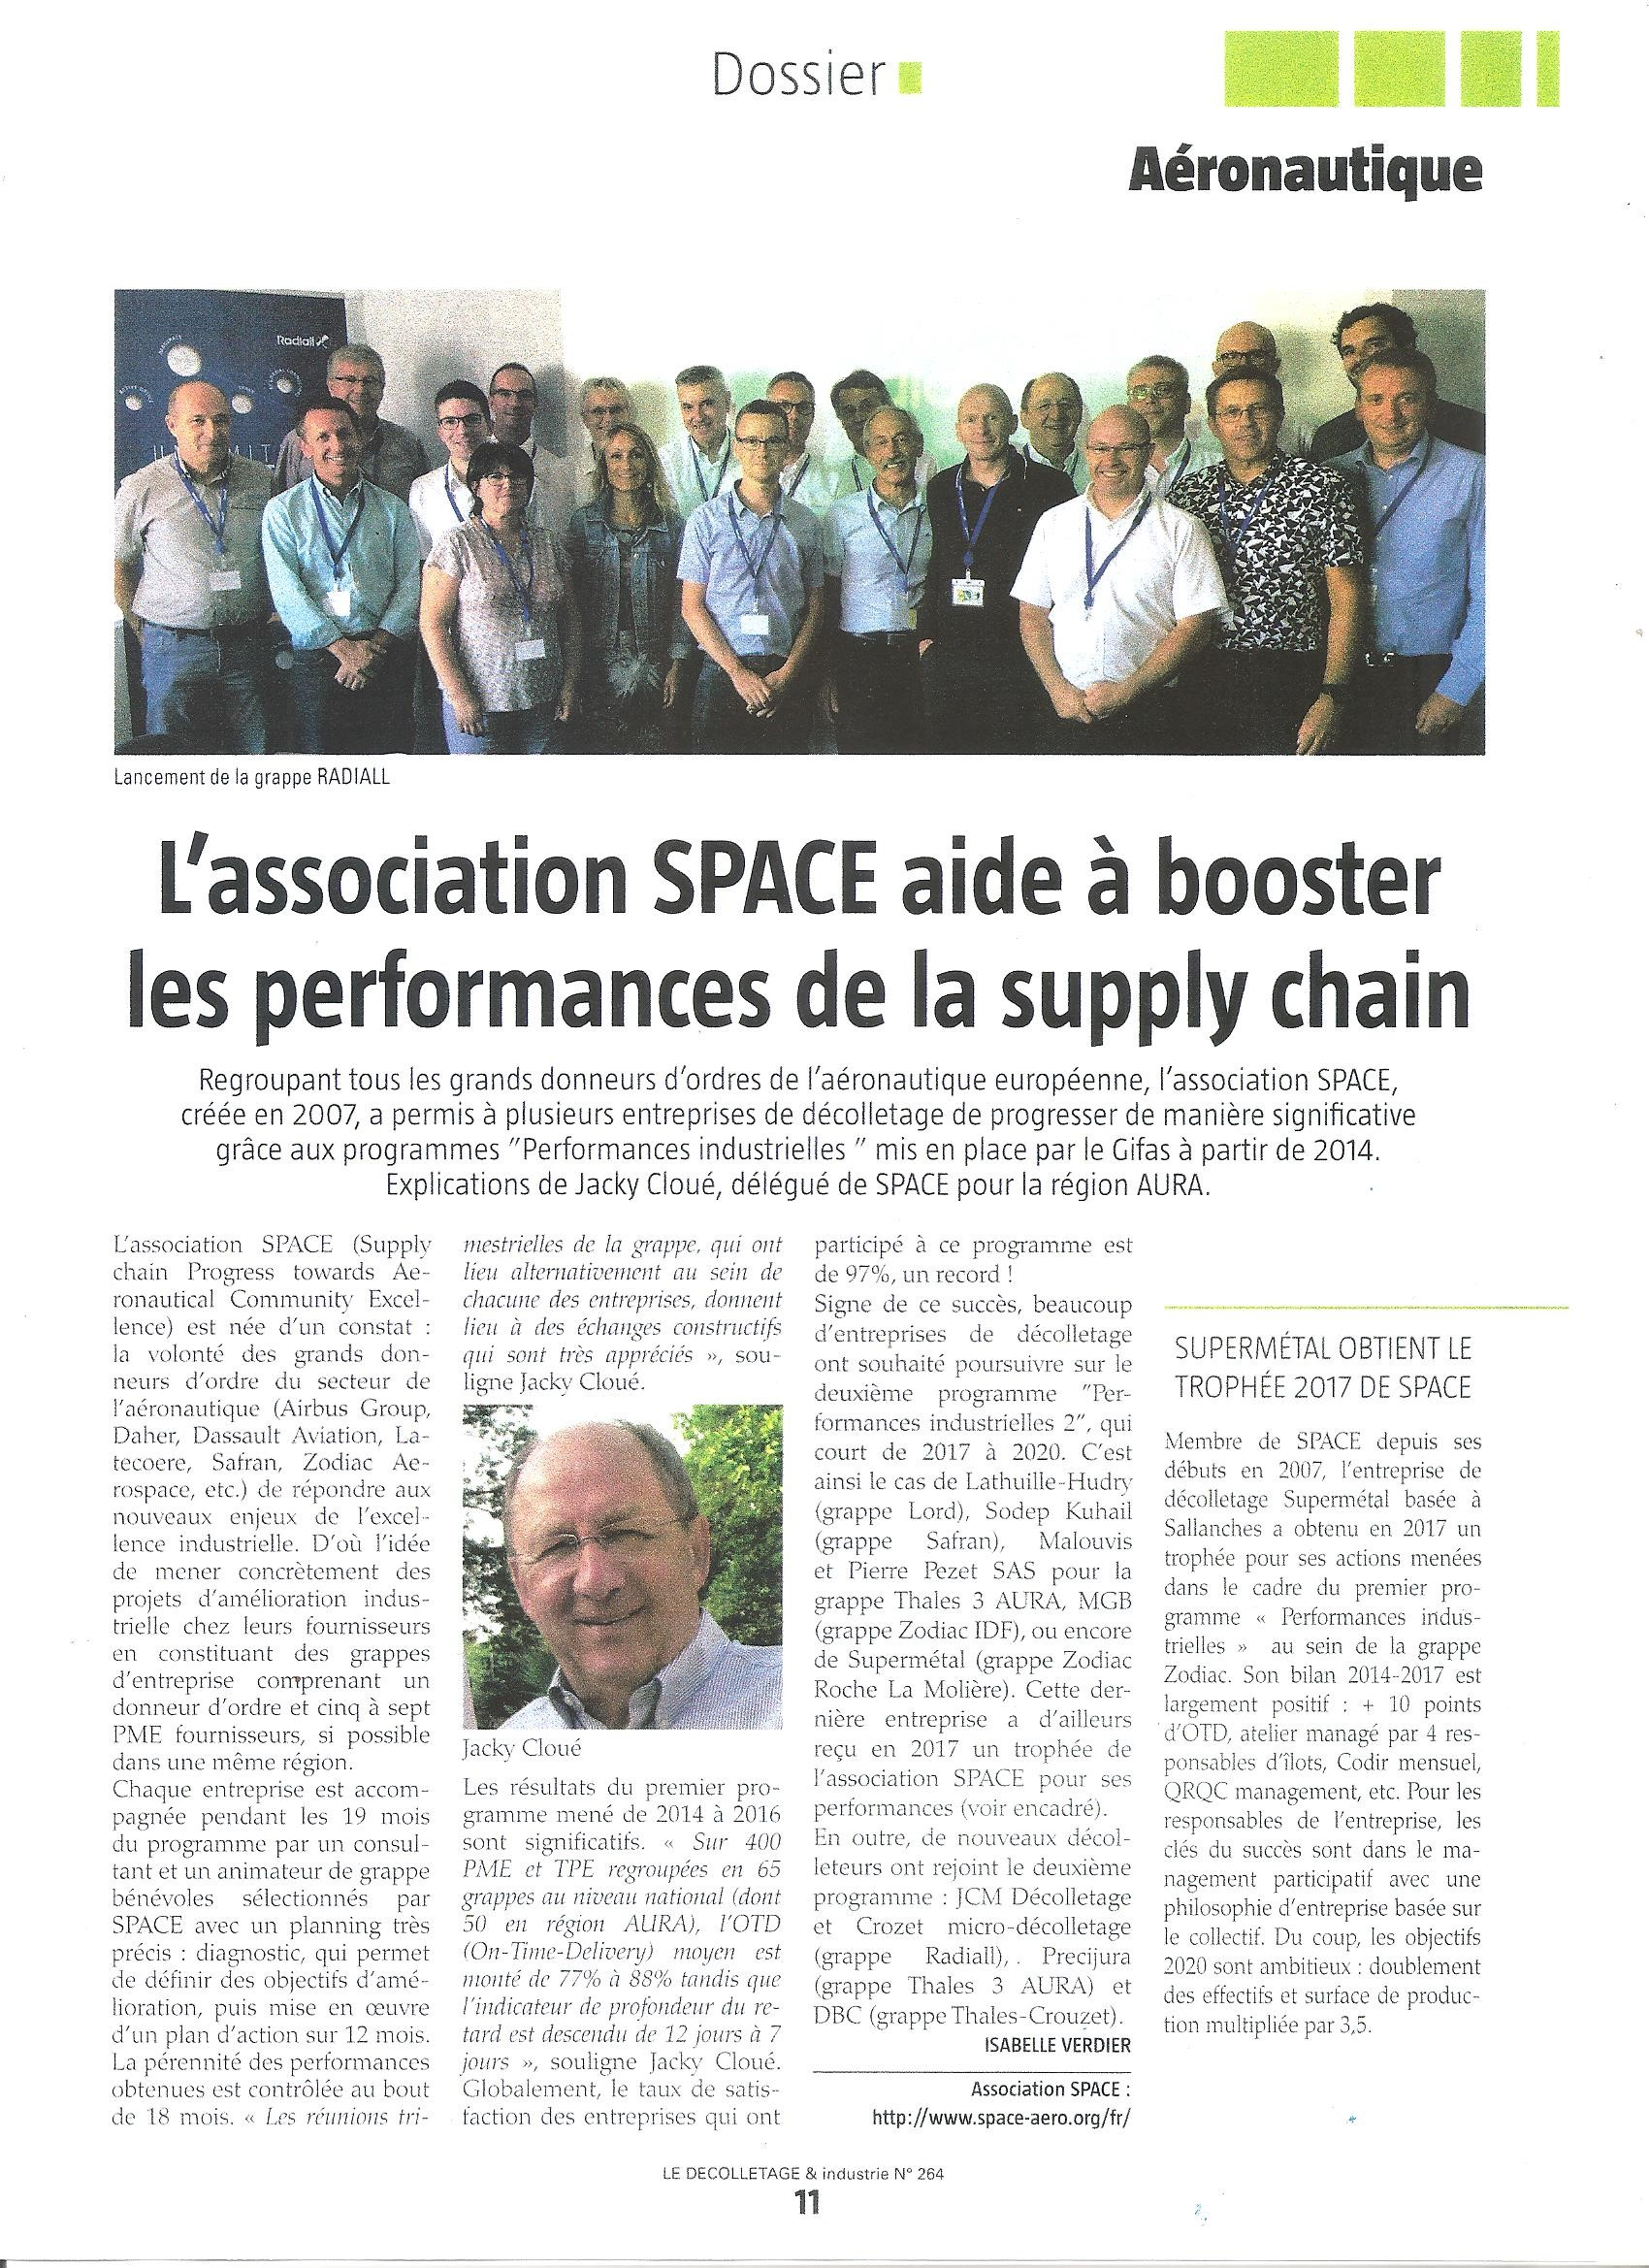 L'association SPACE Aide à Booster Les Performances De La Supply Chain